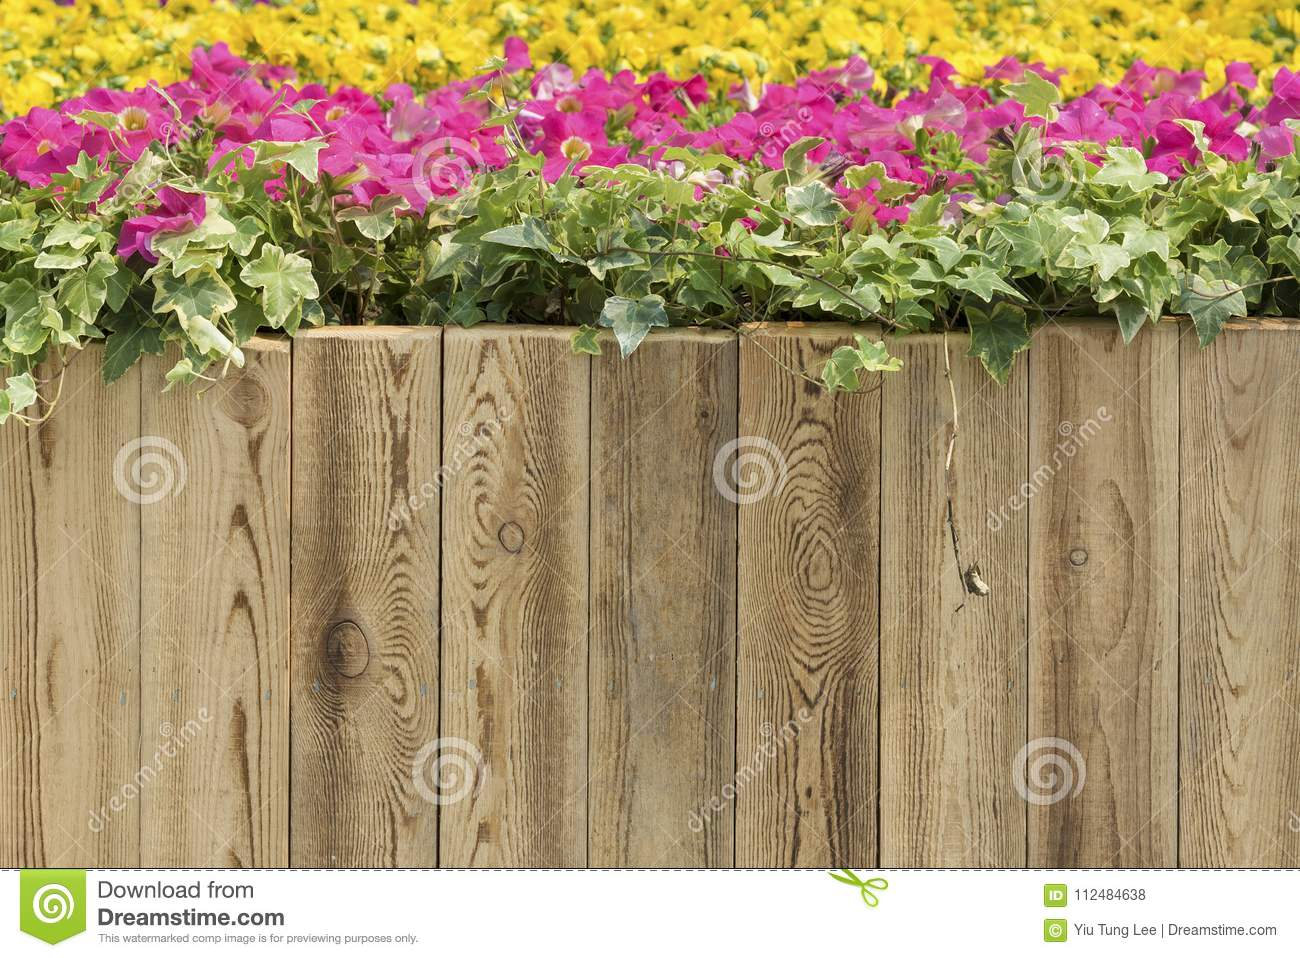 Wooden fence stock photo. Image of border, gardening - 112484638